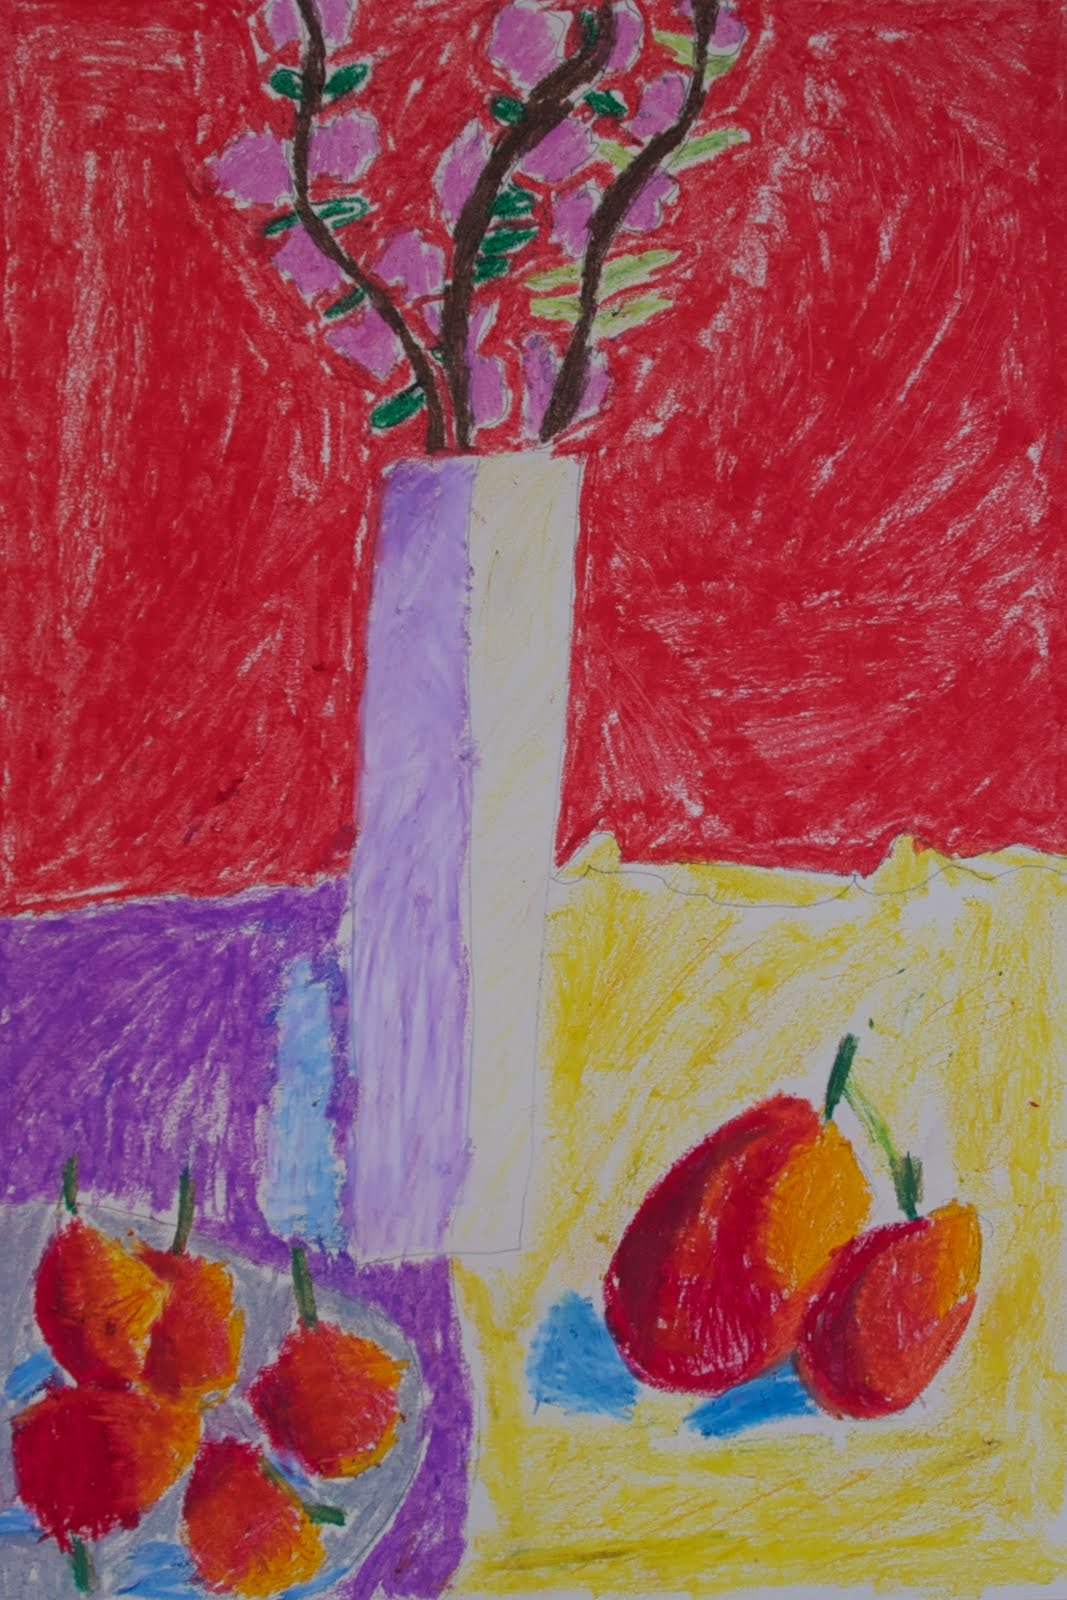 Picture Study and Recommended Artists | Homeschool Notebooking